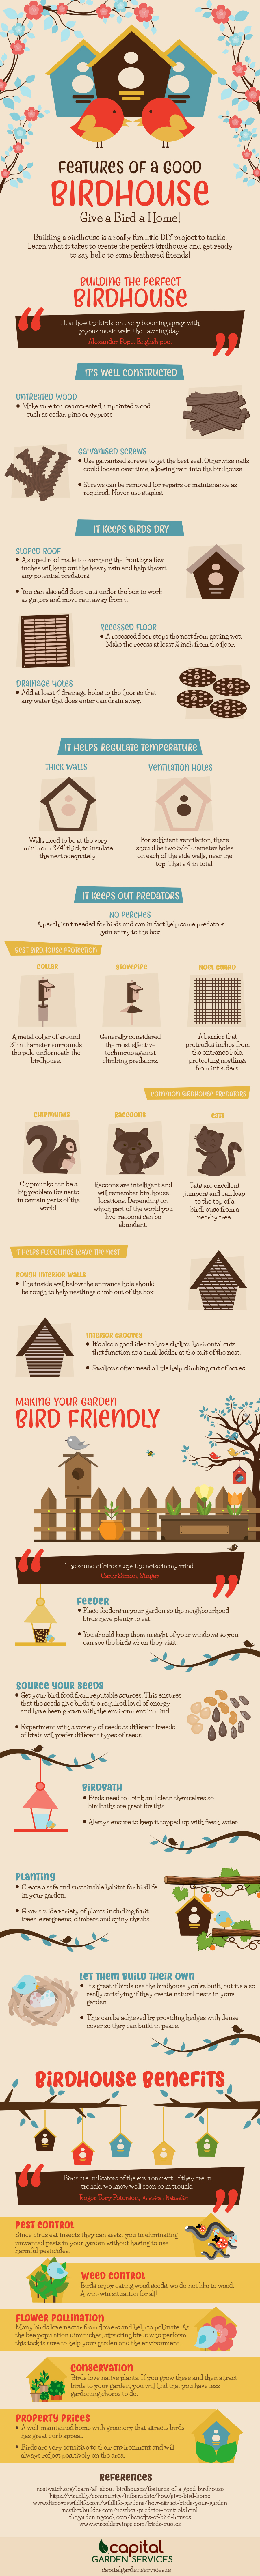 Features of a Good Birdhouse Infographic